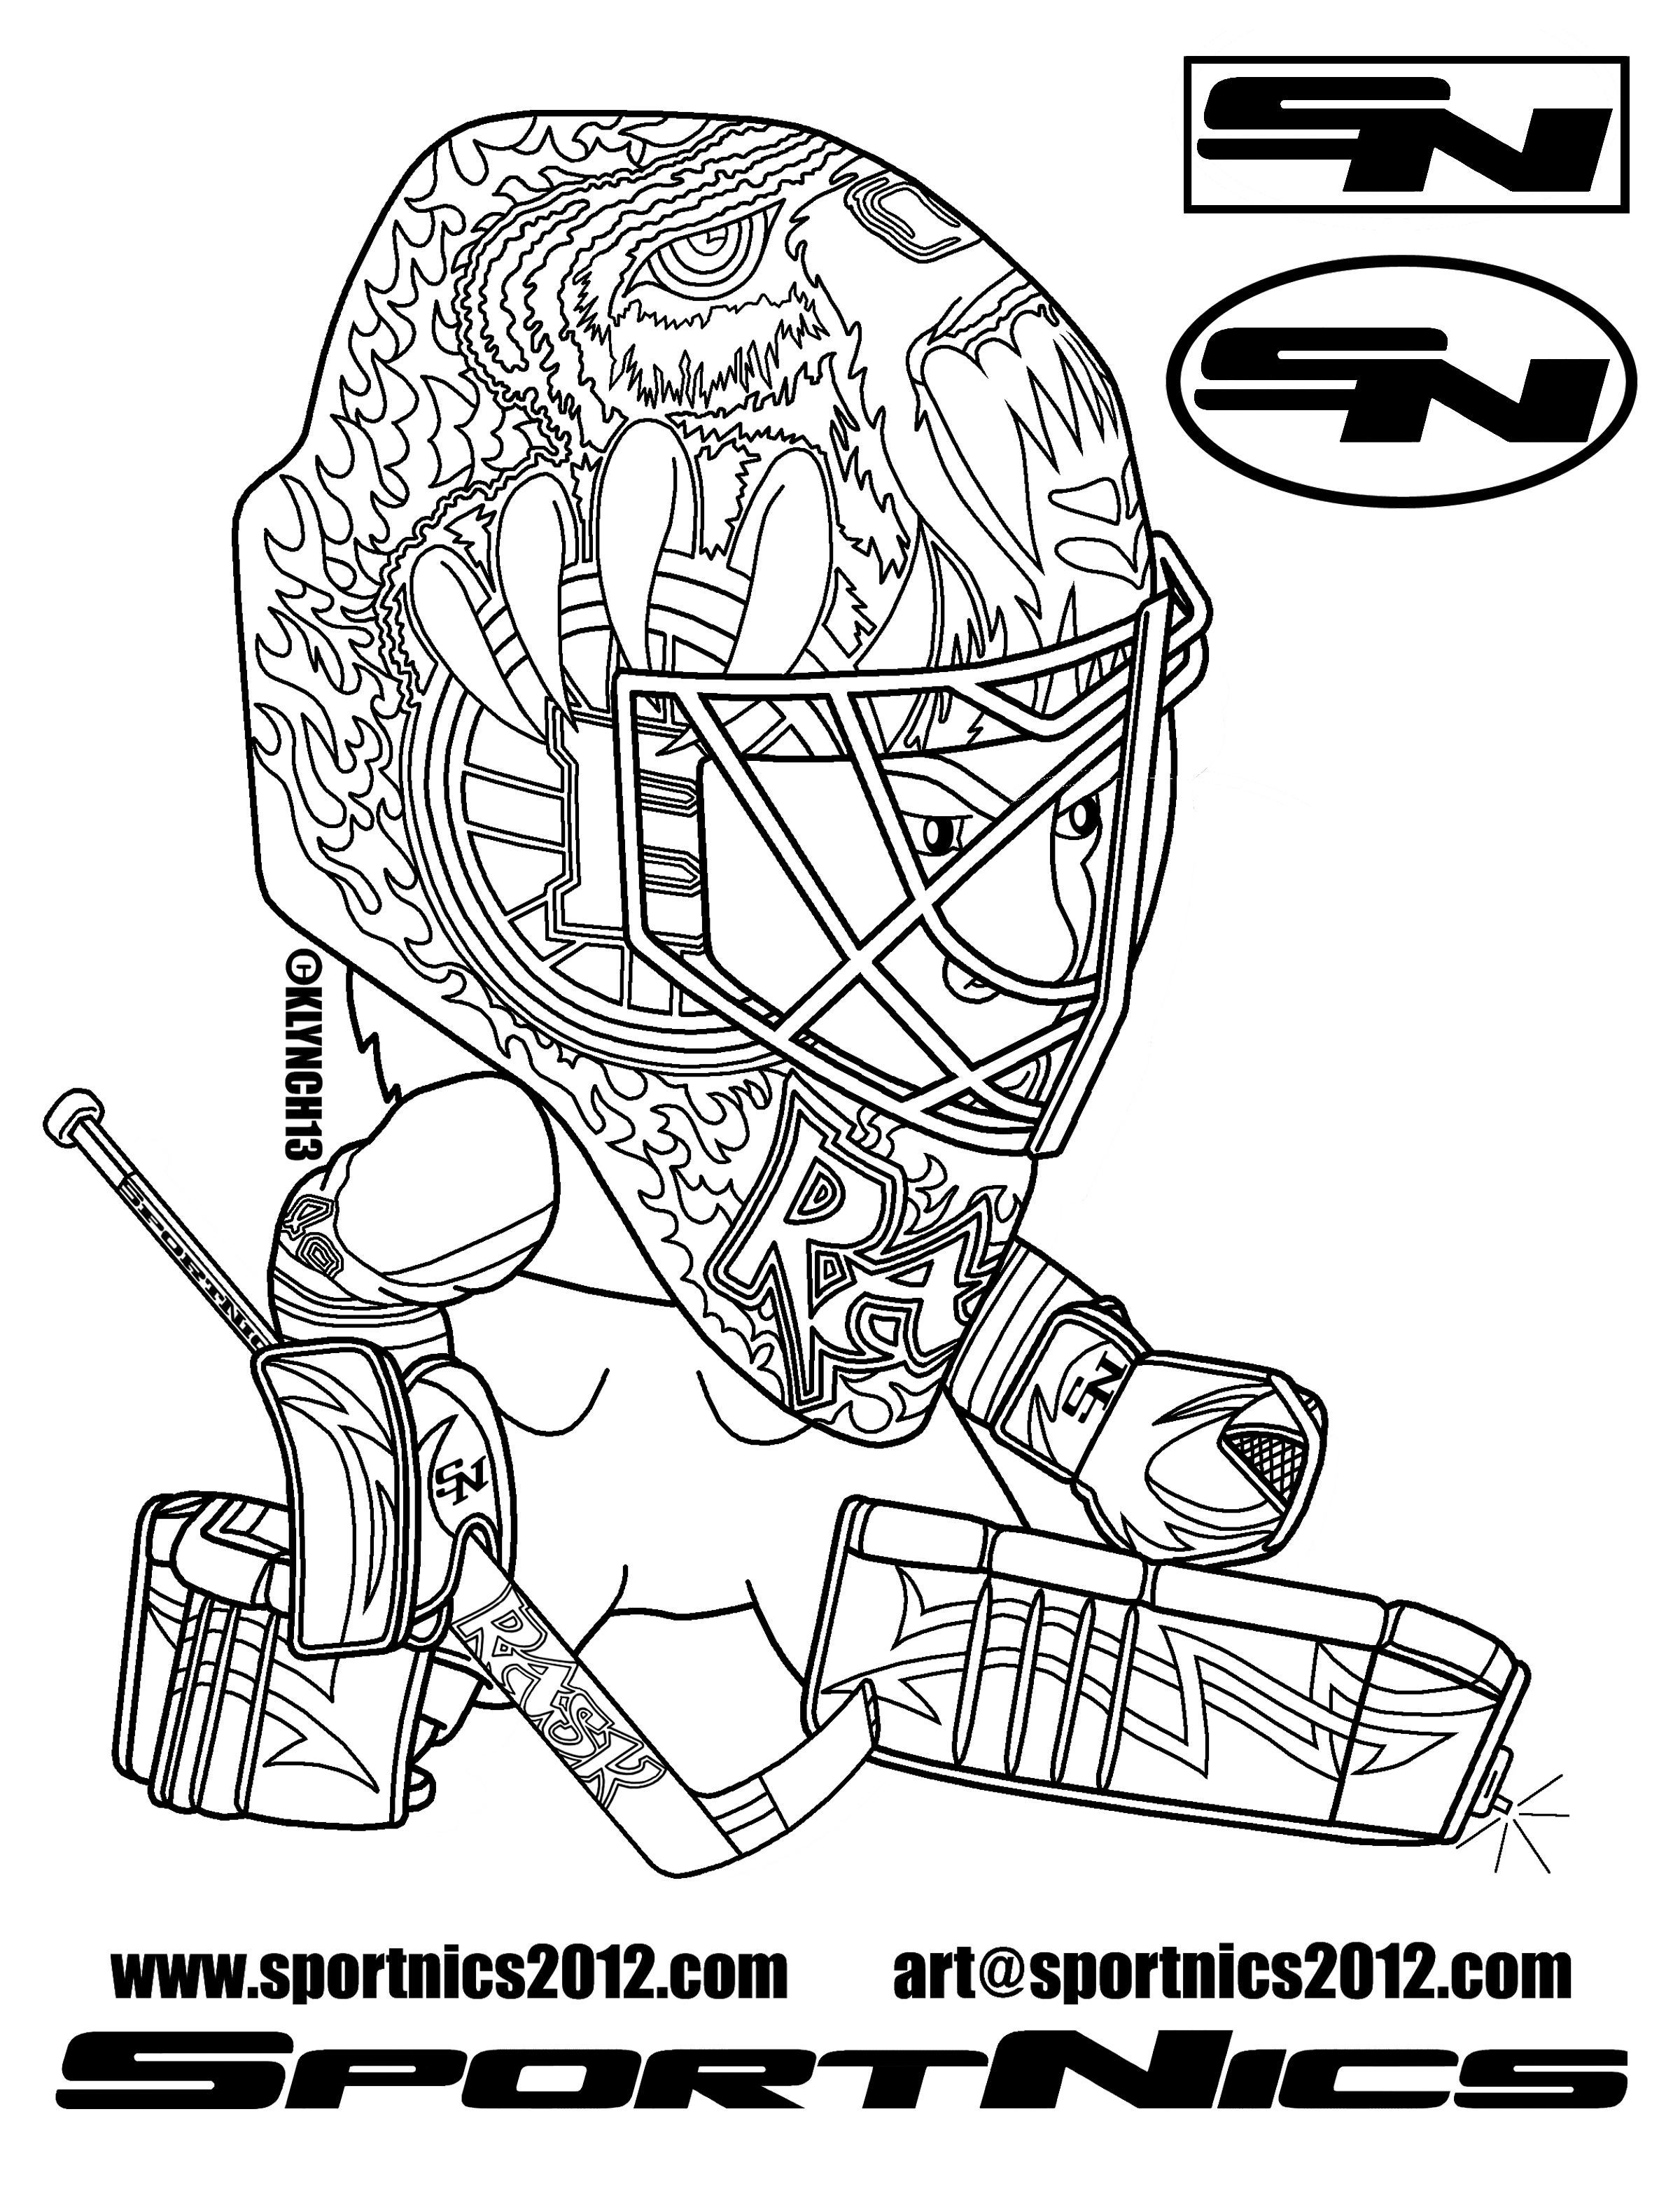 Luxe Dessin A Colorier Hockey Canadien